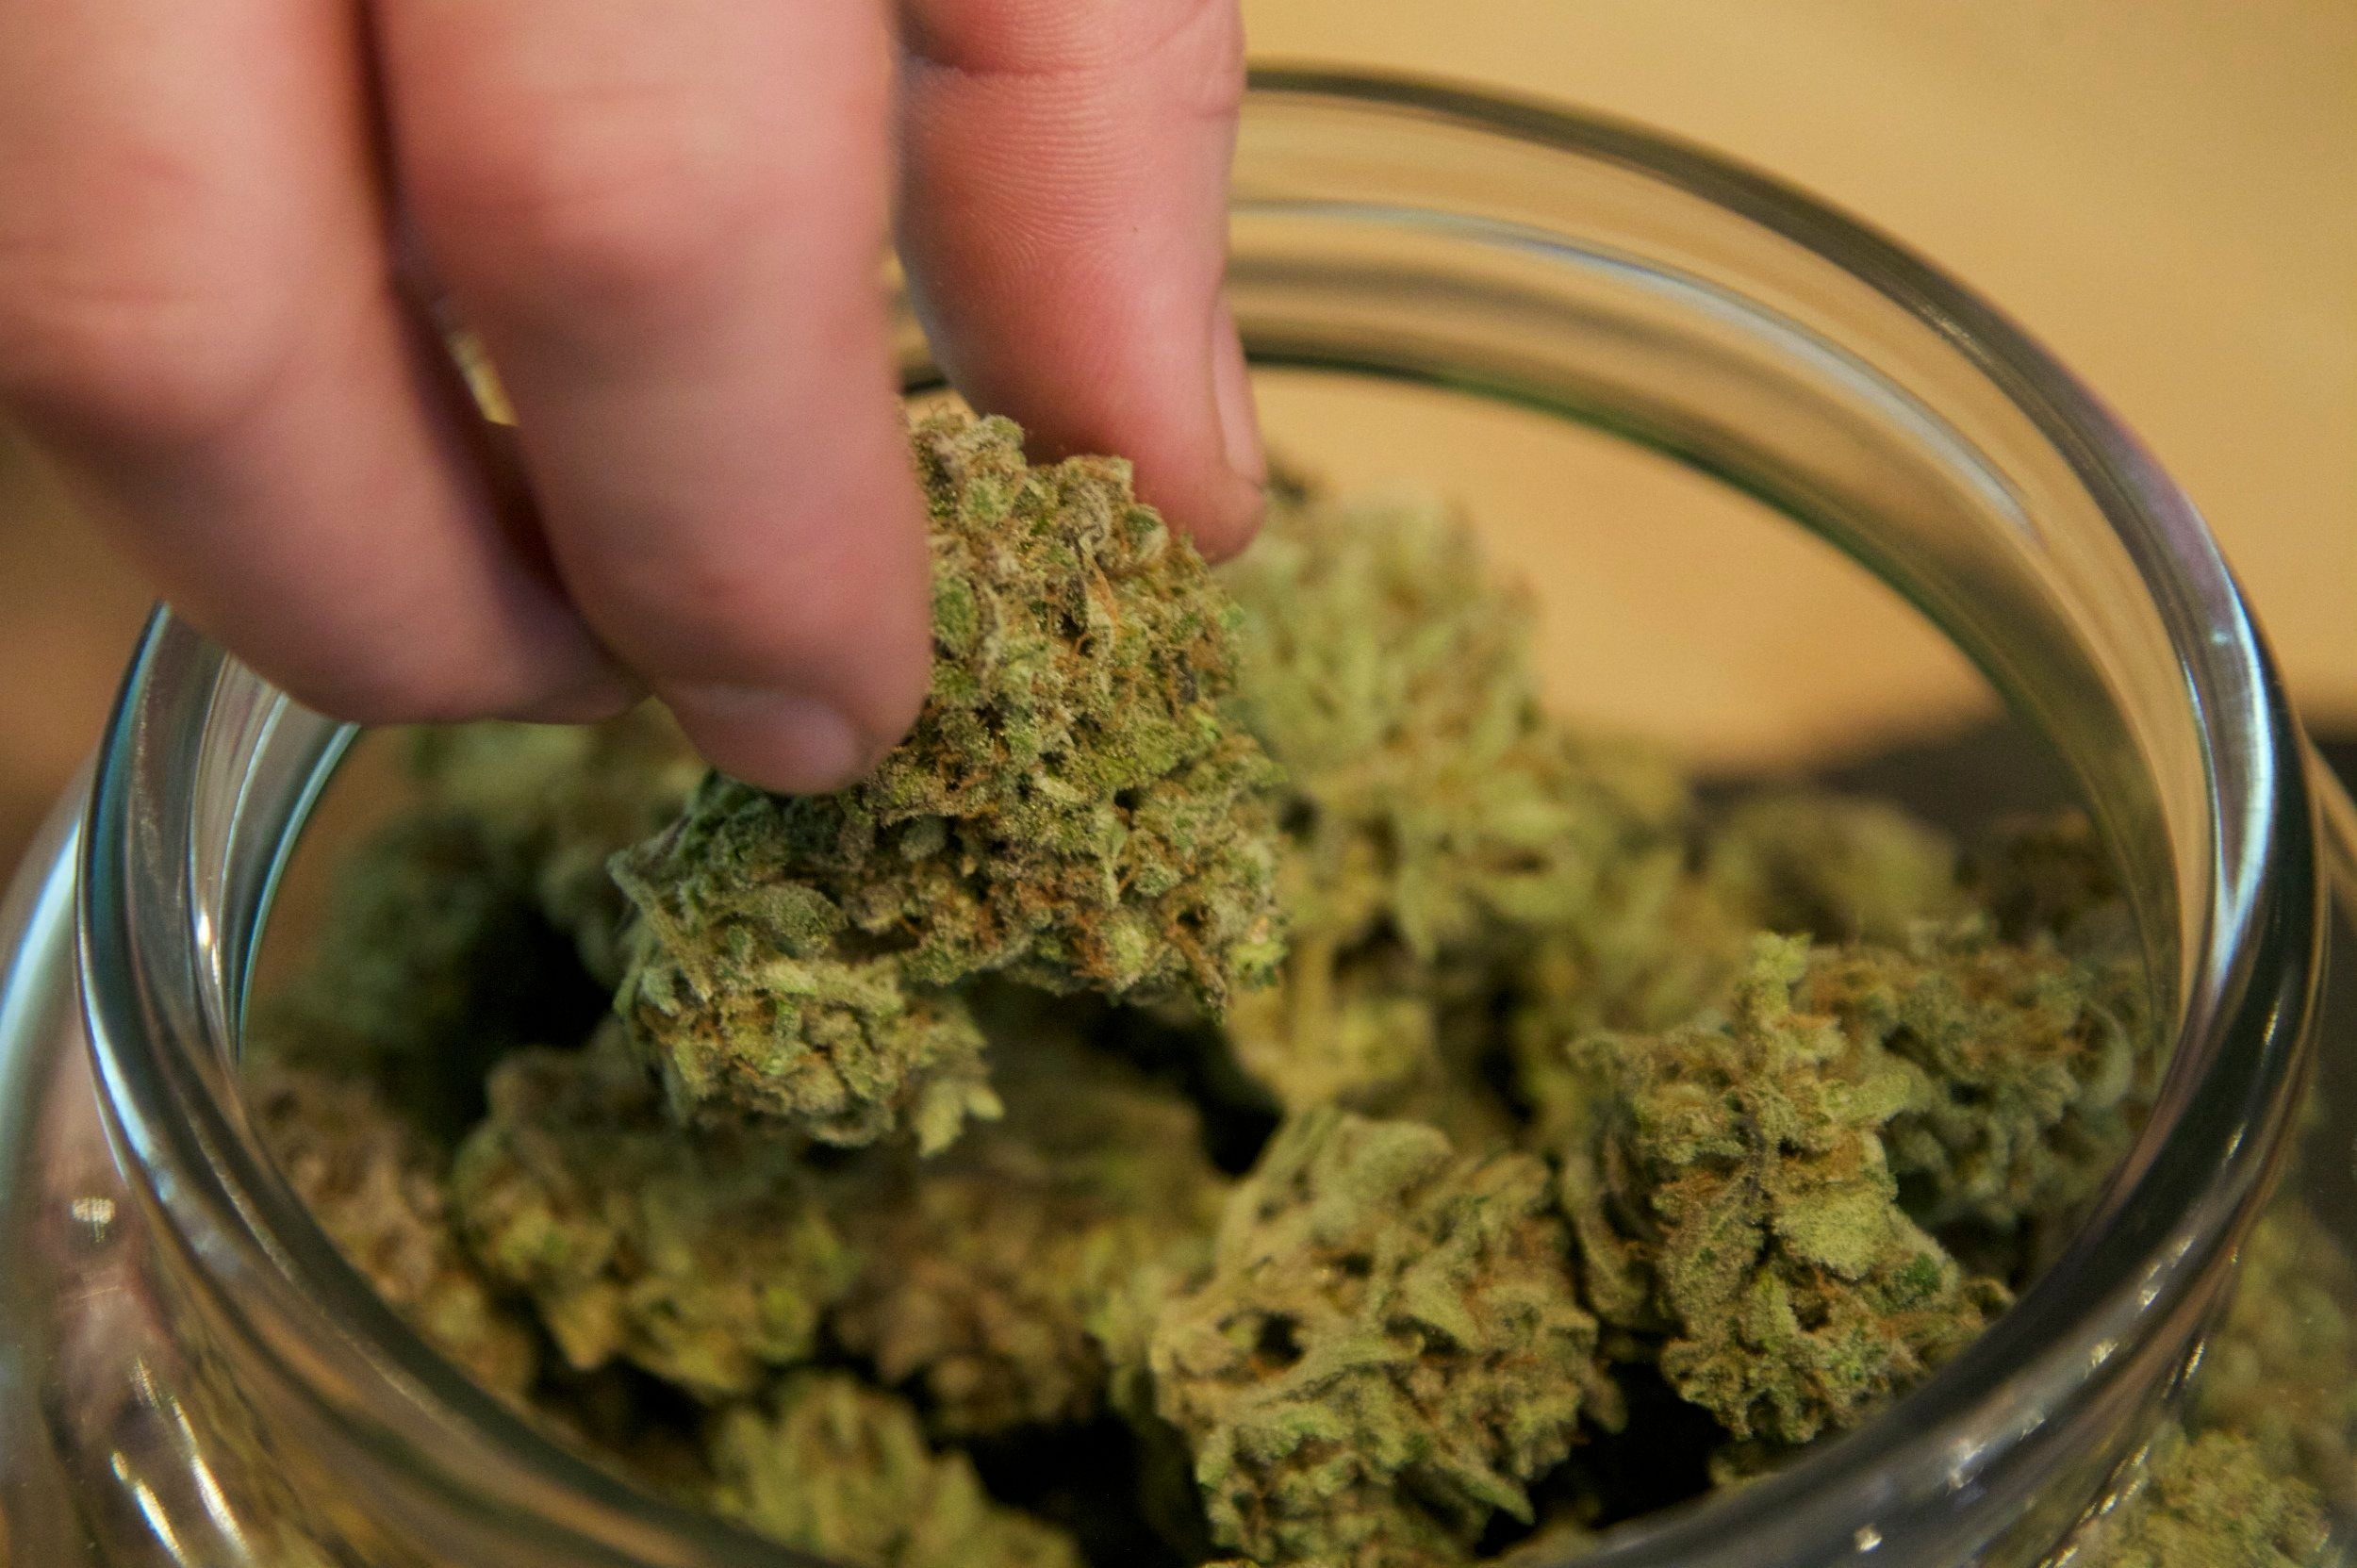 """Buds are removed from a container at the """"Oregon's Finest"""" medical marijuana dispensary in Portland, Oregon April 8, 2014. Over 20 Oregon cities and counties are moving to temporarily ban medical marijuana dispensaries ahead of a May deadline, reflecting a divide between liberal Portland and more conservative rural areas wary about allowing medical weed. Portland, Oregon's largest city, already has a number of medical marijuana clinics and has not moved to ban them. Picture taken April 8, 2014.  REUTERS/Steve Dipaola (UNITED STATES - Tags: DRUGS SOCIETY POLITICS HEALTH)"""